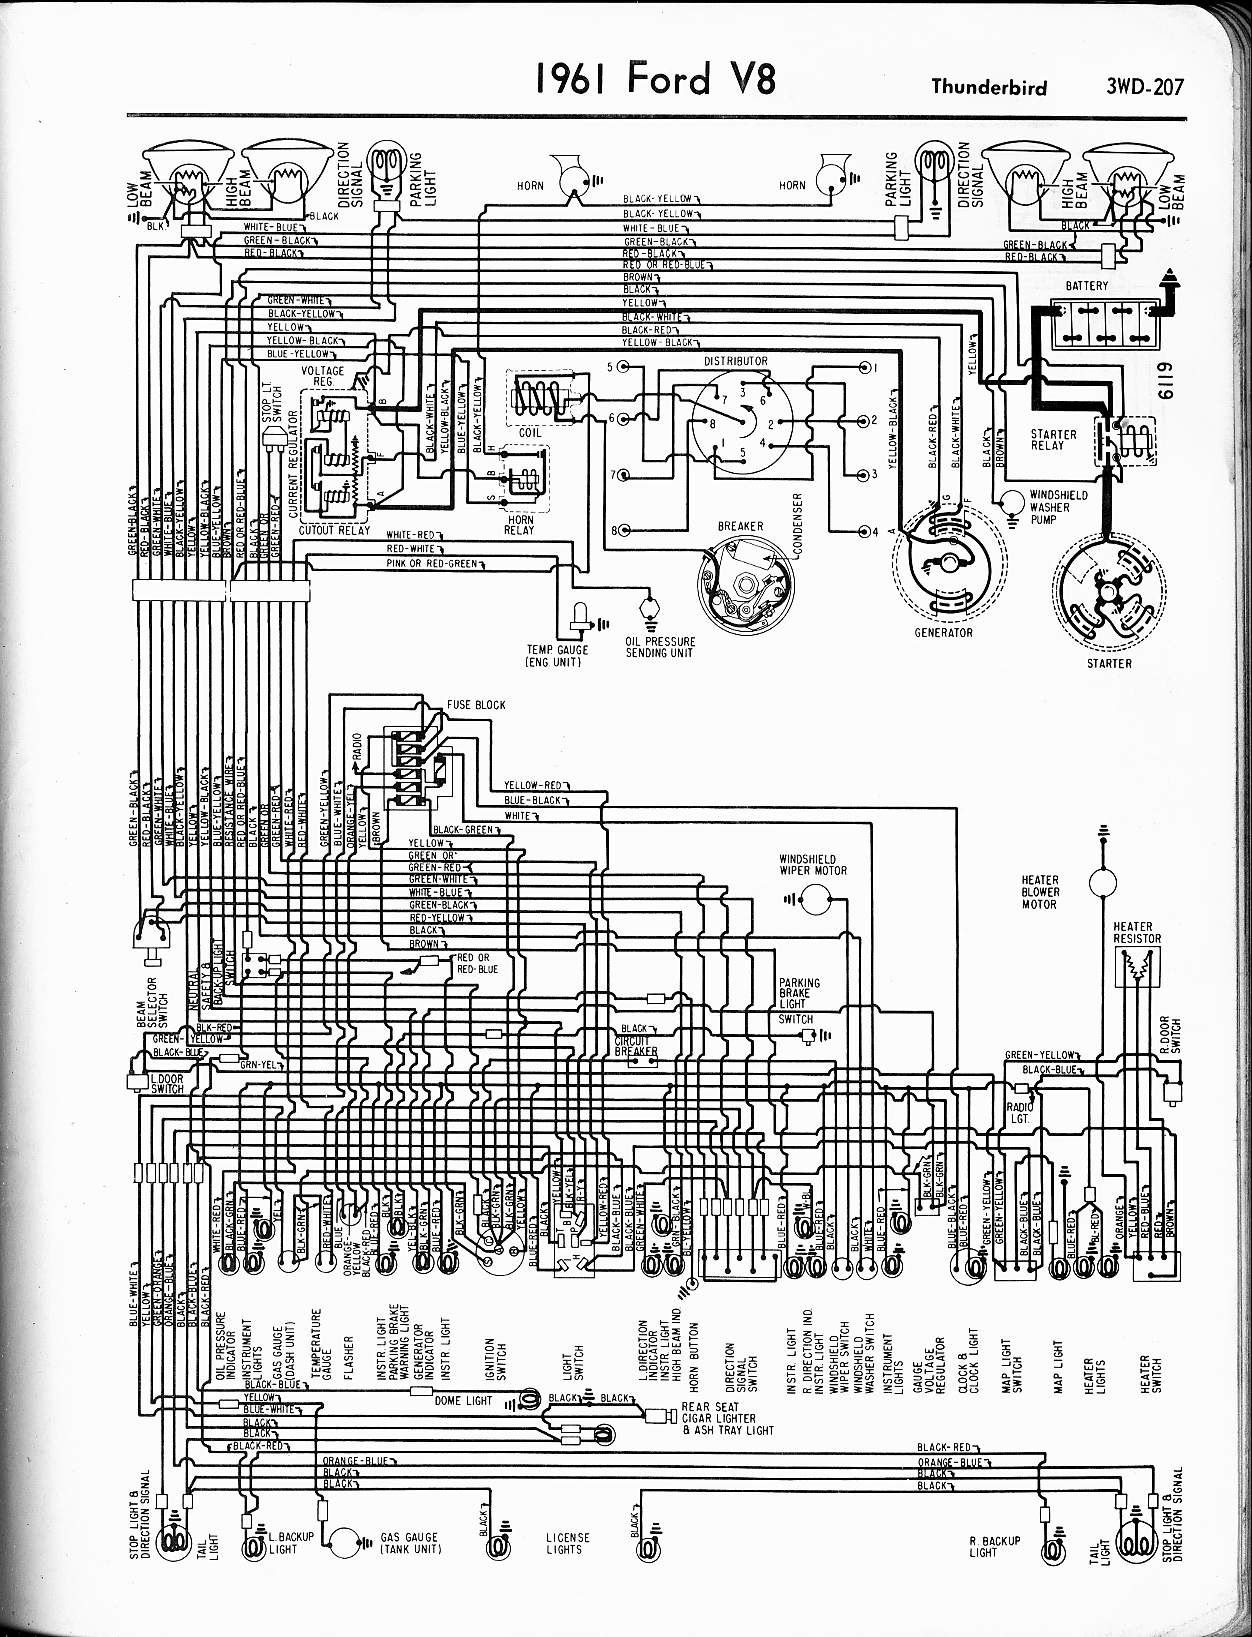 57 65 ford wiring diagrams Ford Electrical Diagram 1961 thunderbird